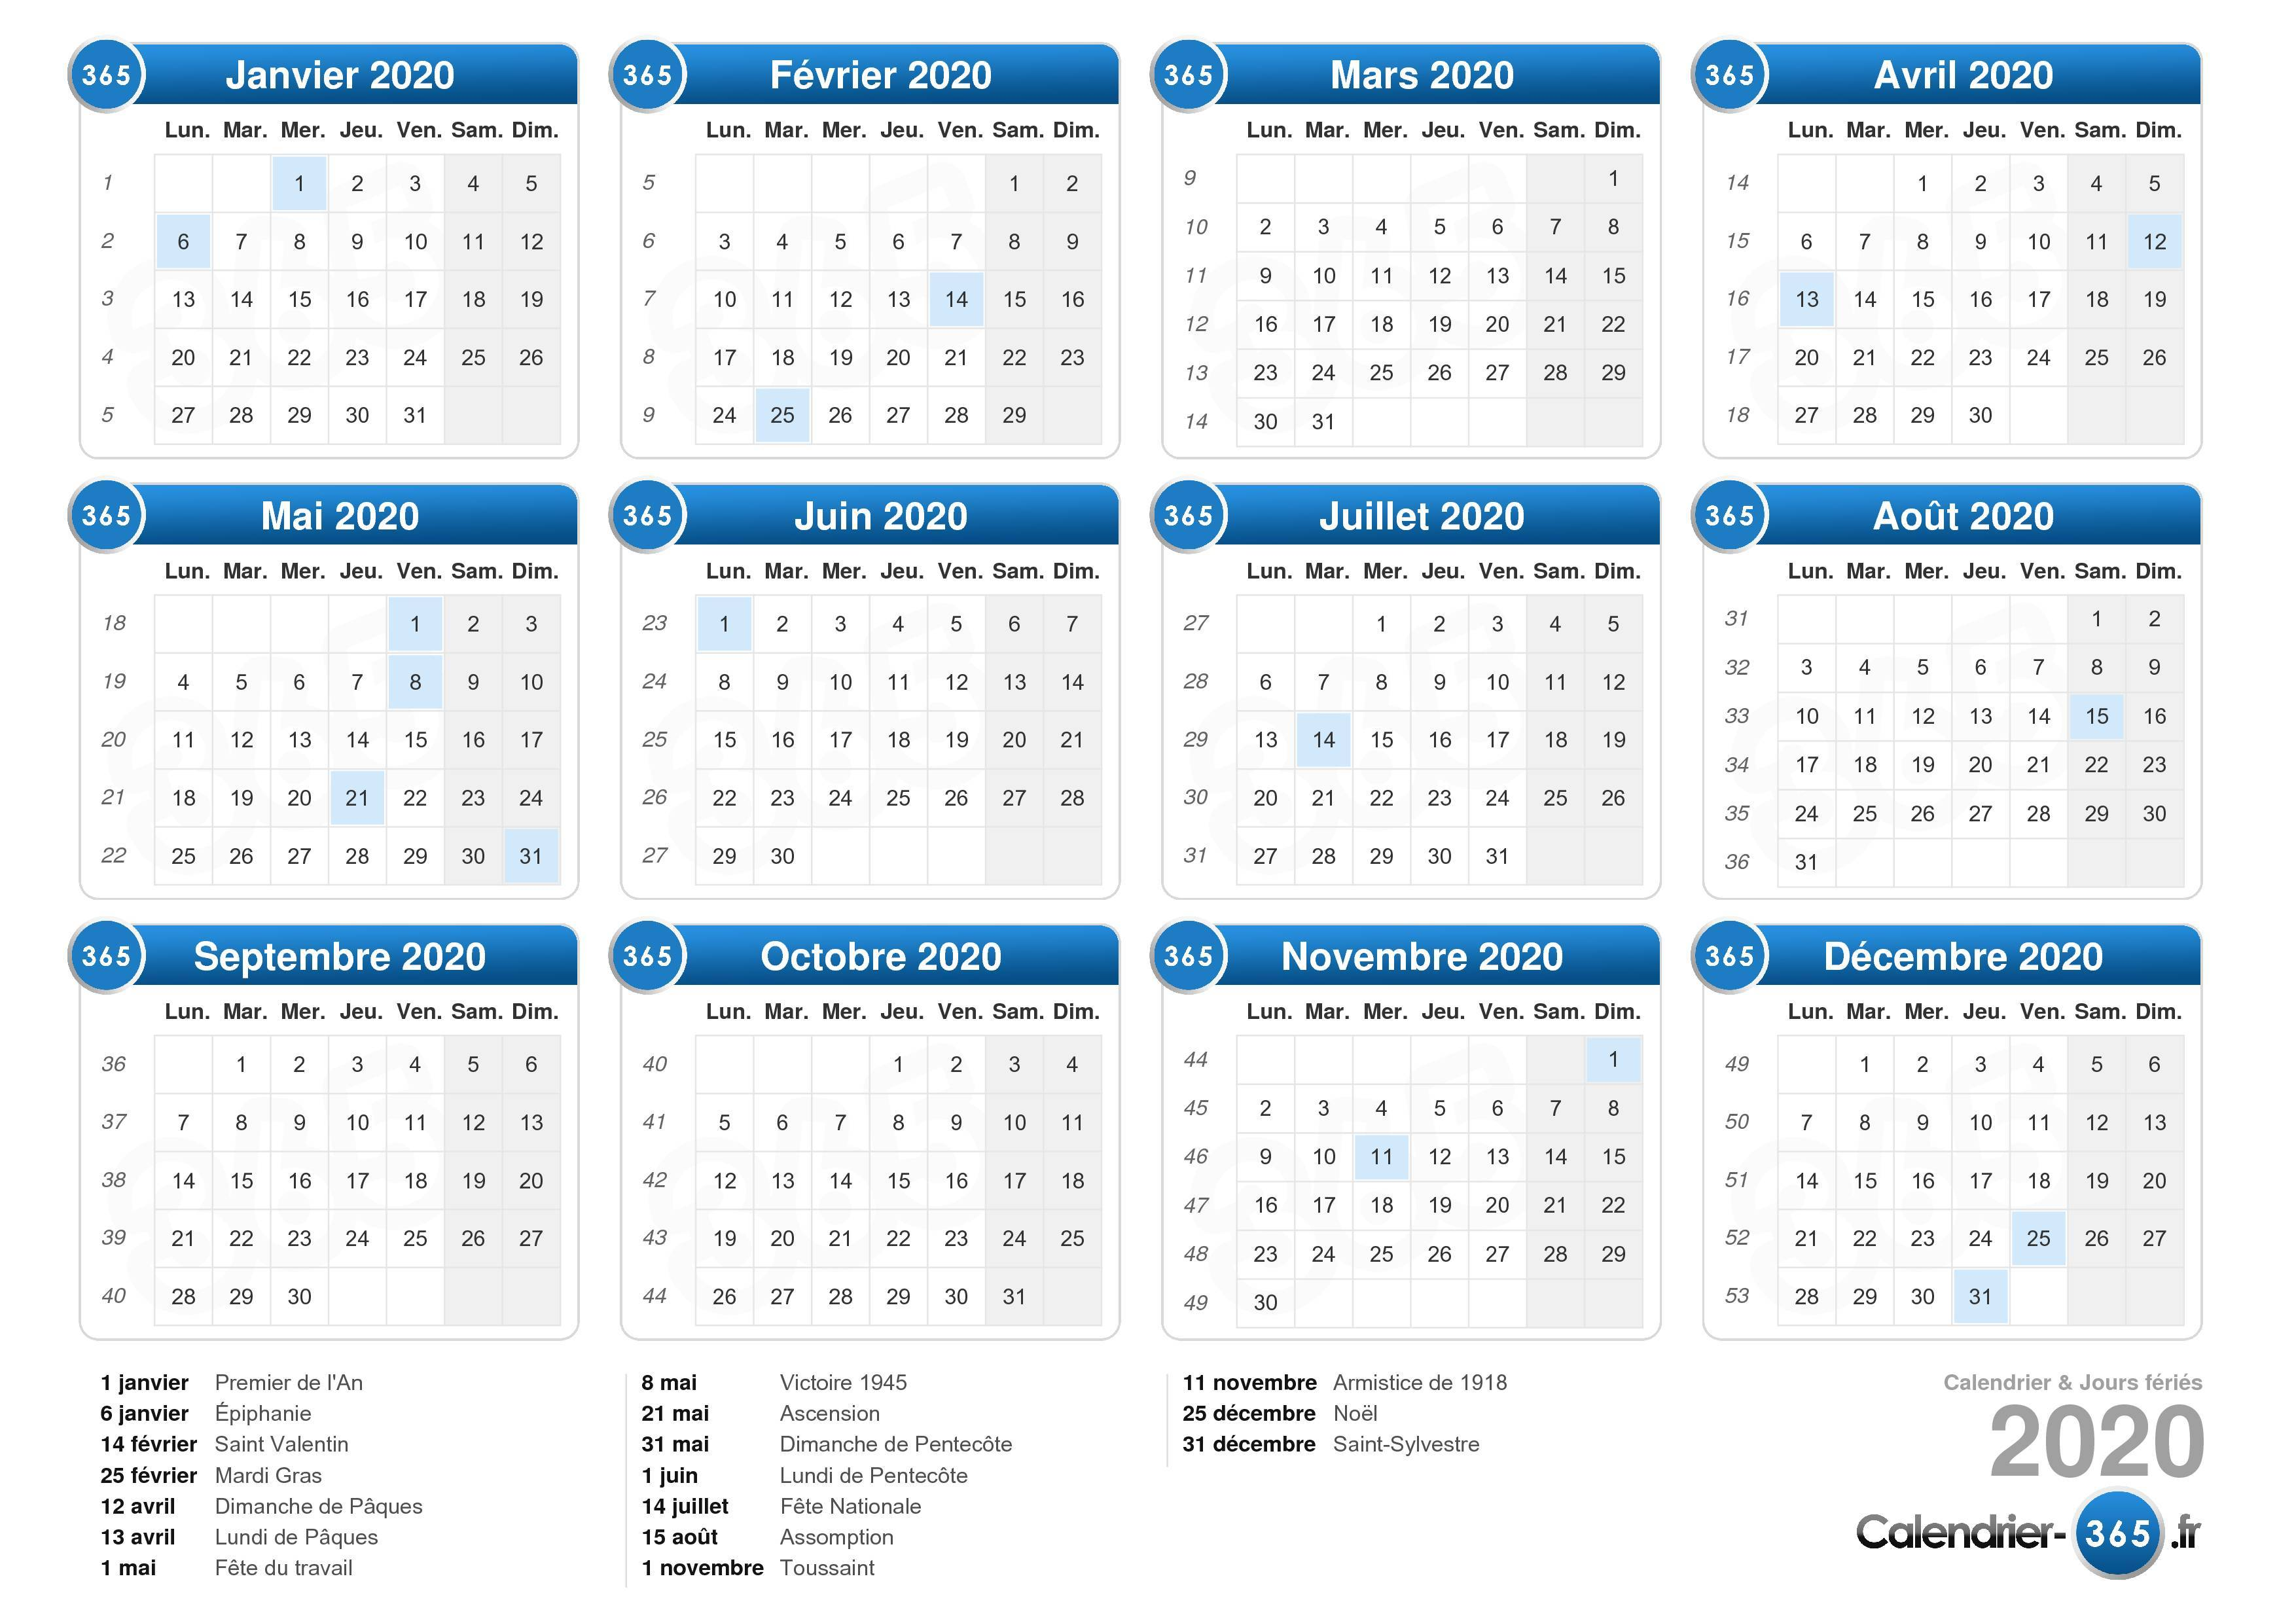 Calendrier 2020 Excell.Calendrier 2020